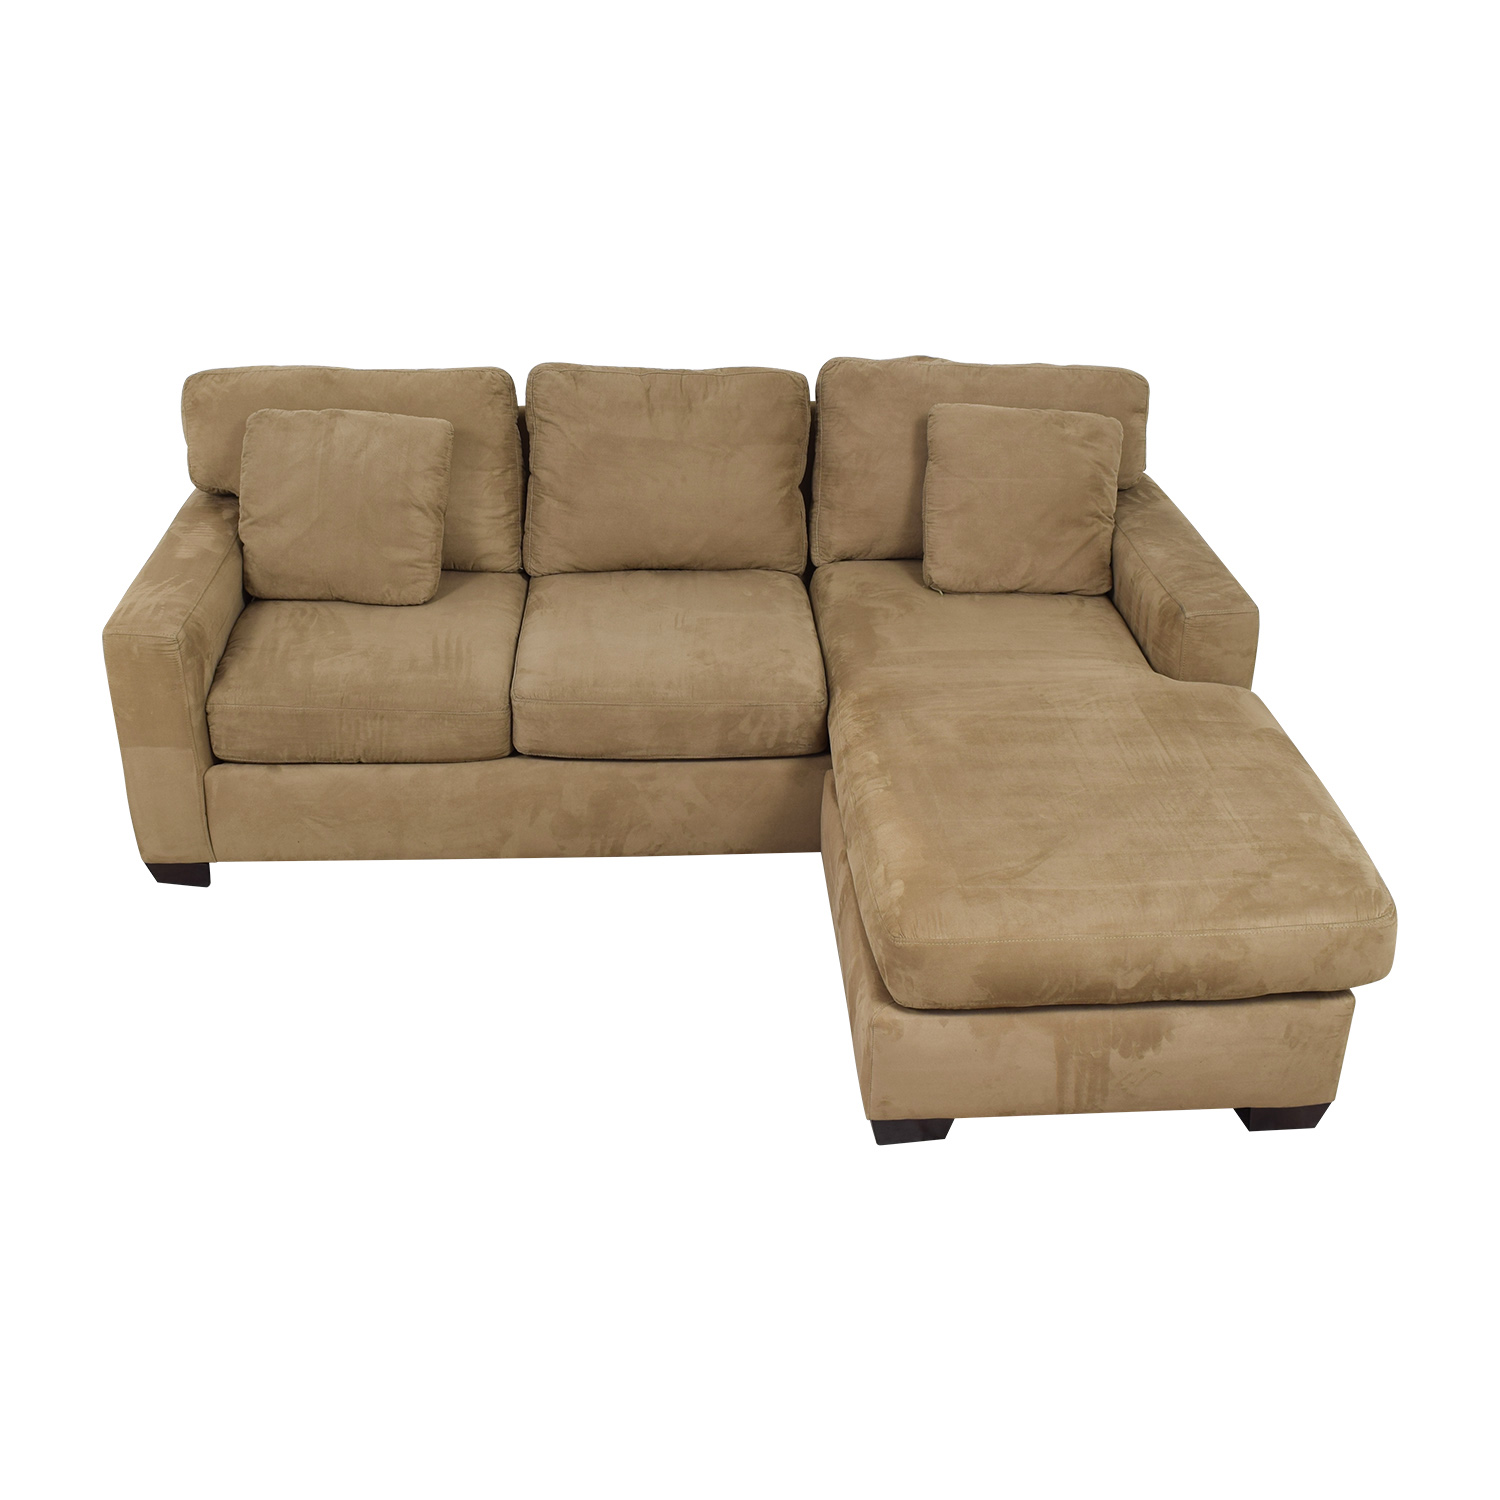 buy Better By Design Beige Chaise Sectional Better By Design